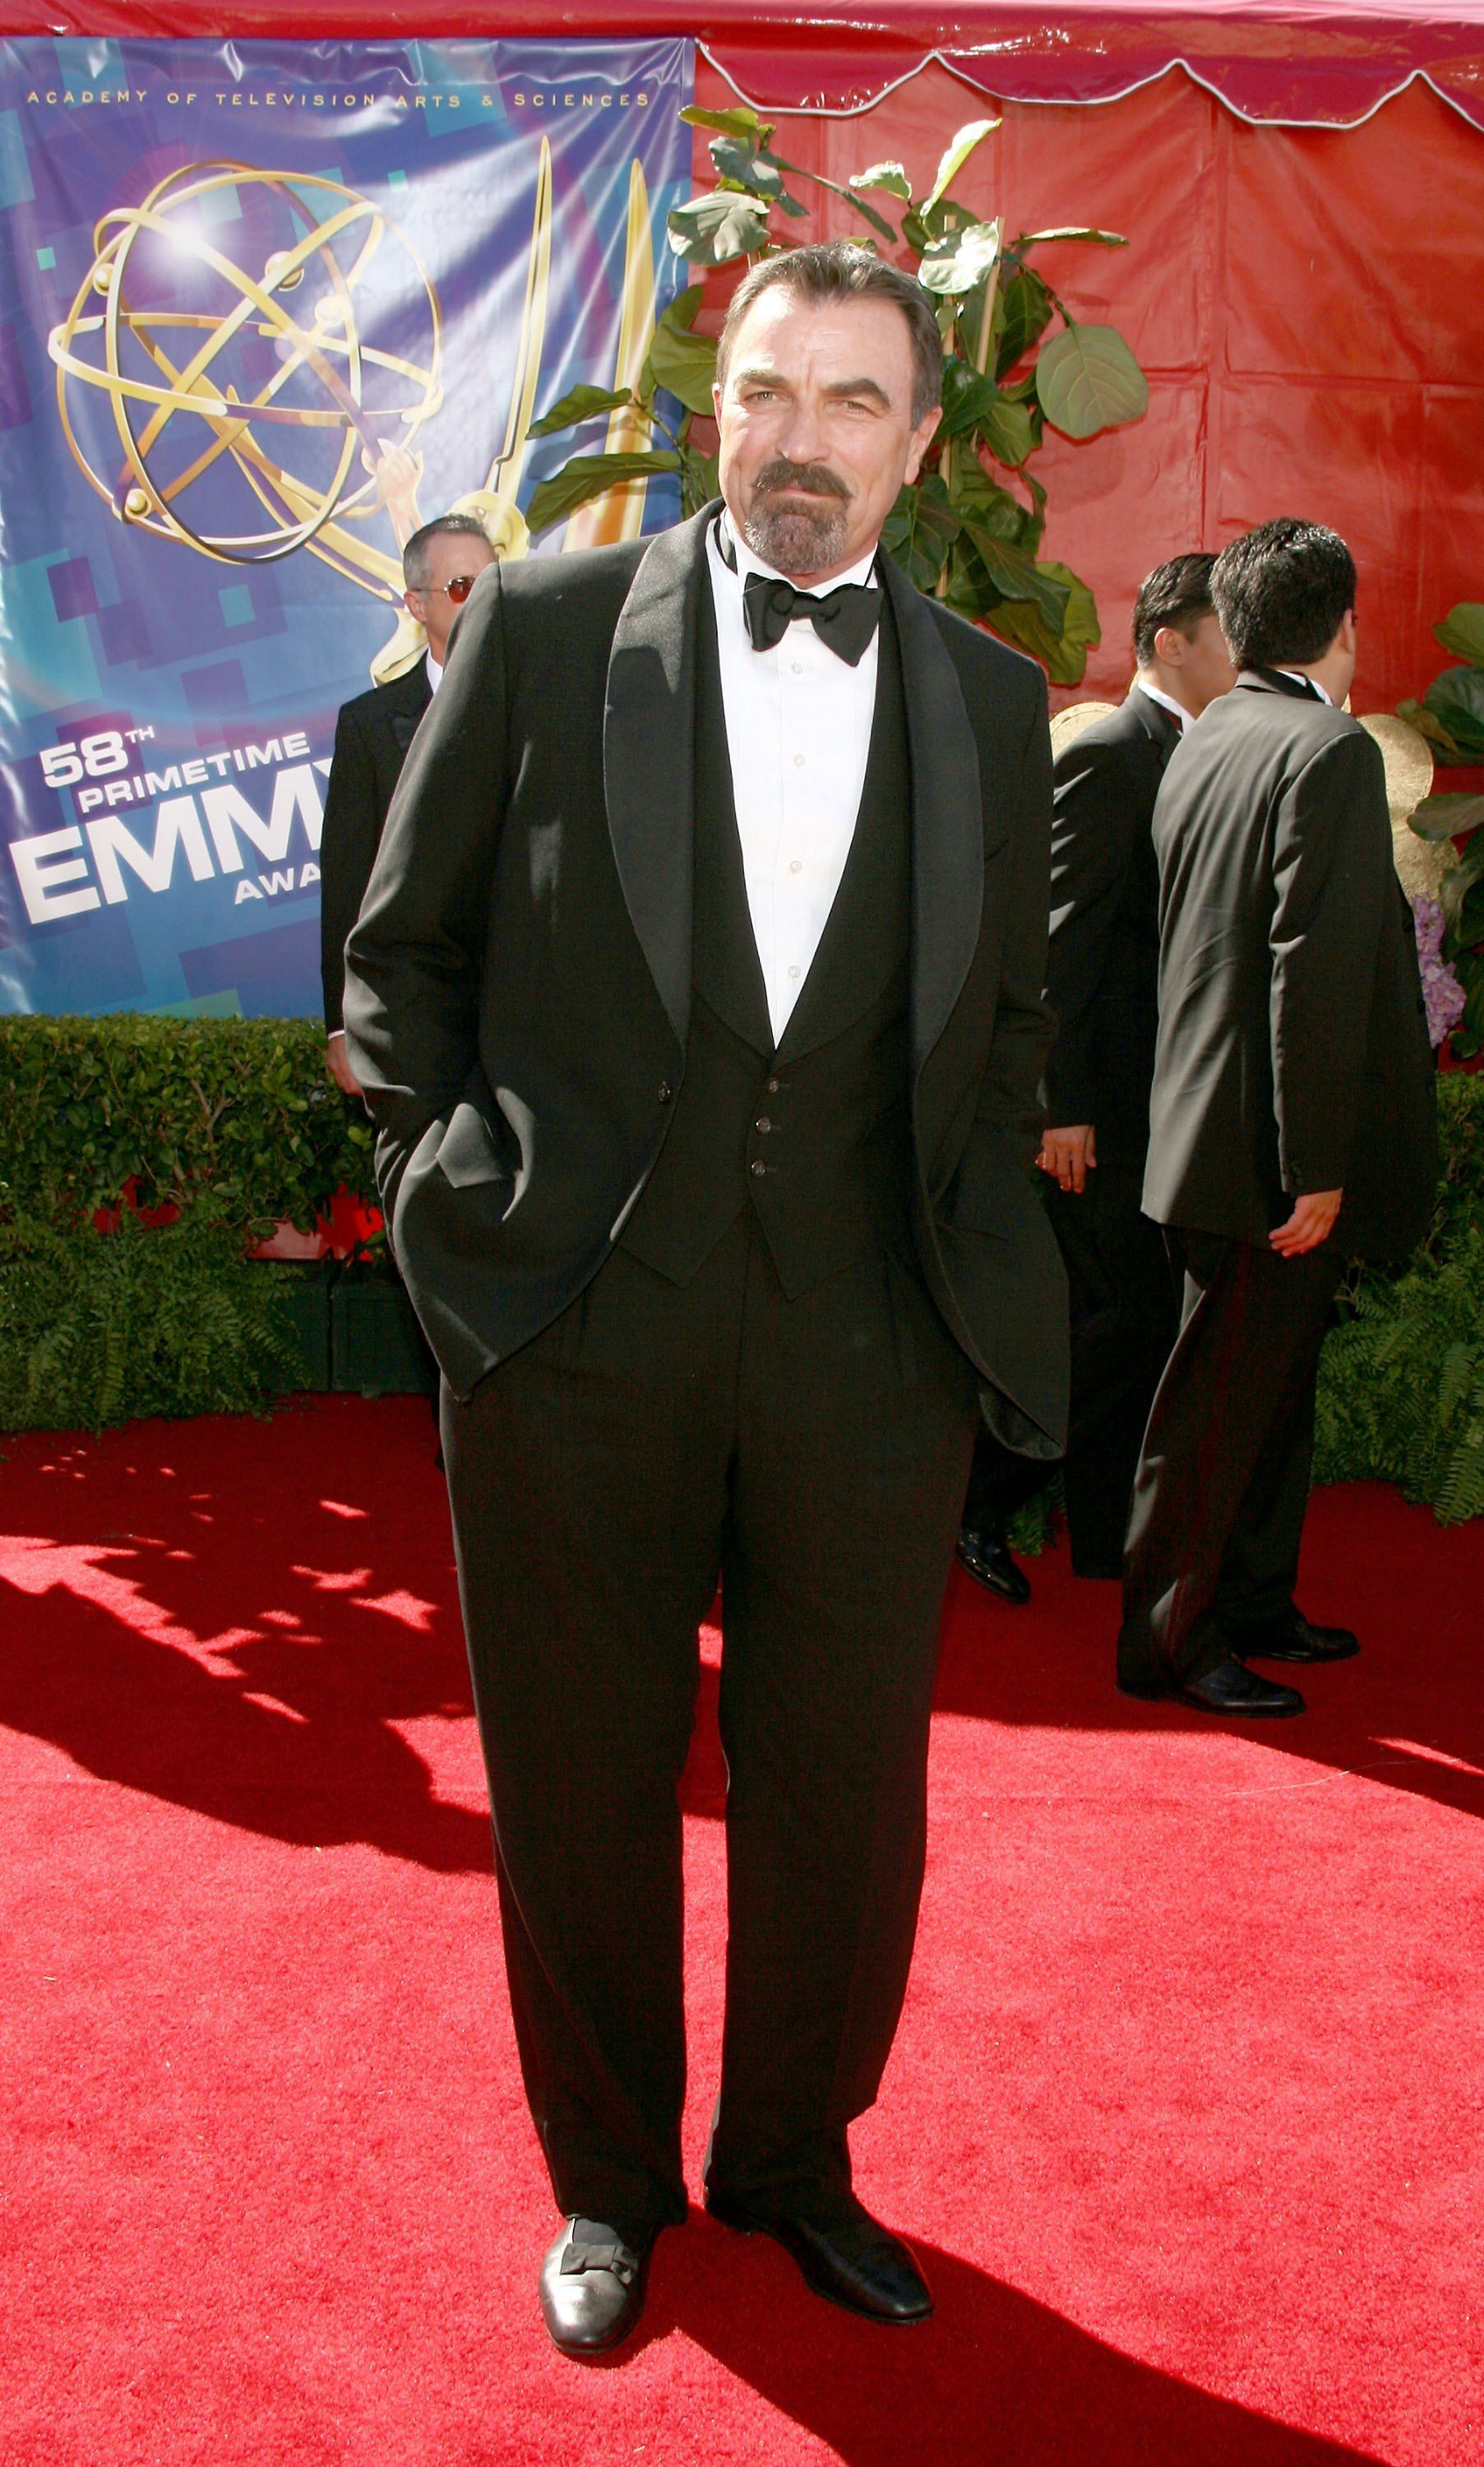 Tom Selleck at the 58th Annual Primetime Emmy Awards at the Shrine Auditorium on August 27, 2006 in Los Angeles, California. | Source: Getty Images